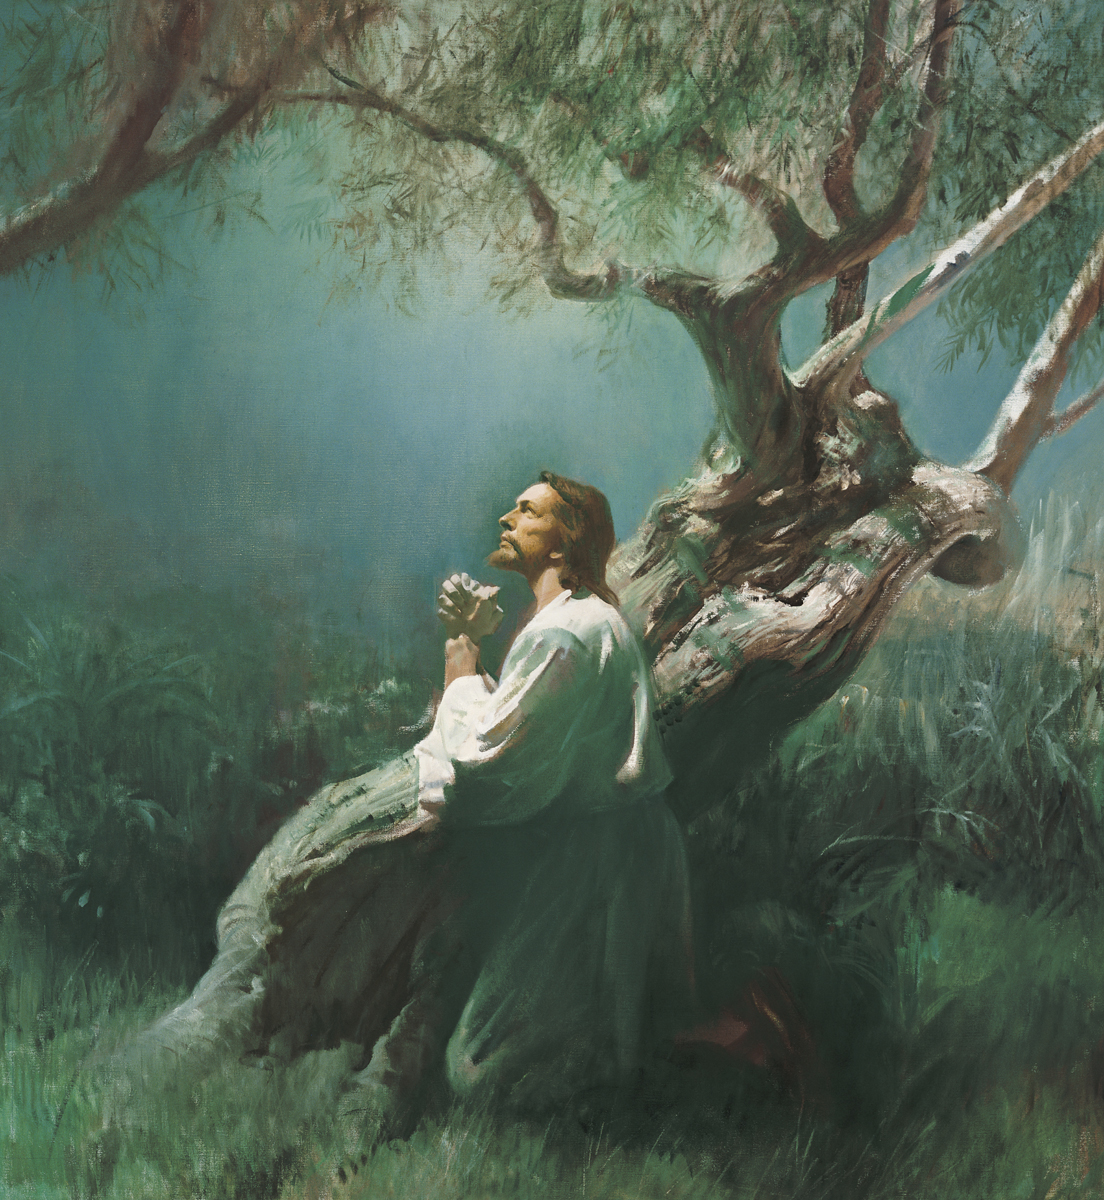 jesus-in-the-garden-of-gethsemane-16-12-20